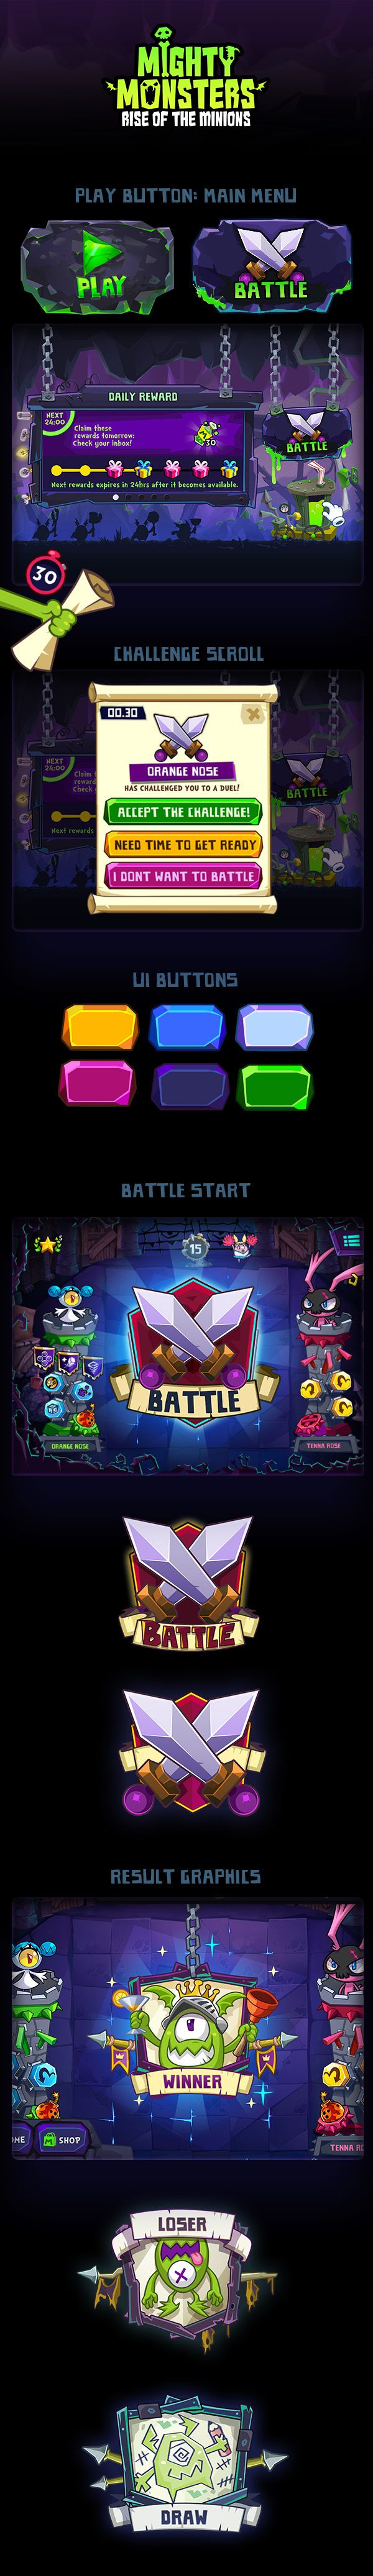 Mighty Monsters Rise of the Minions UI on Behance